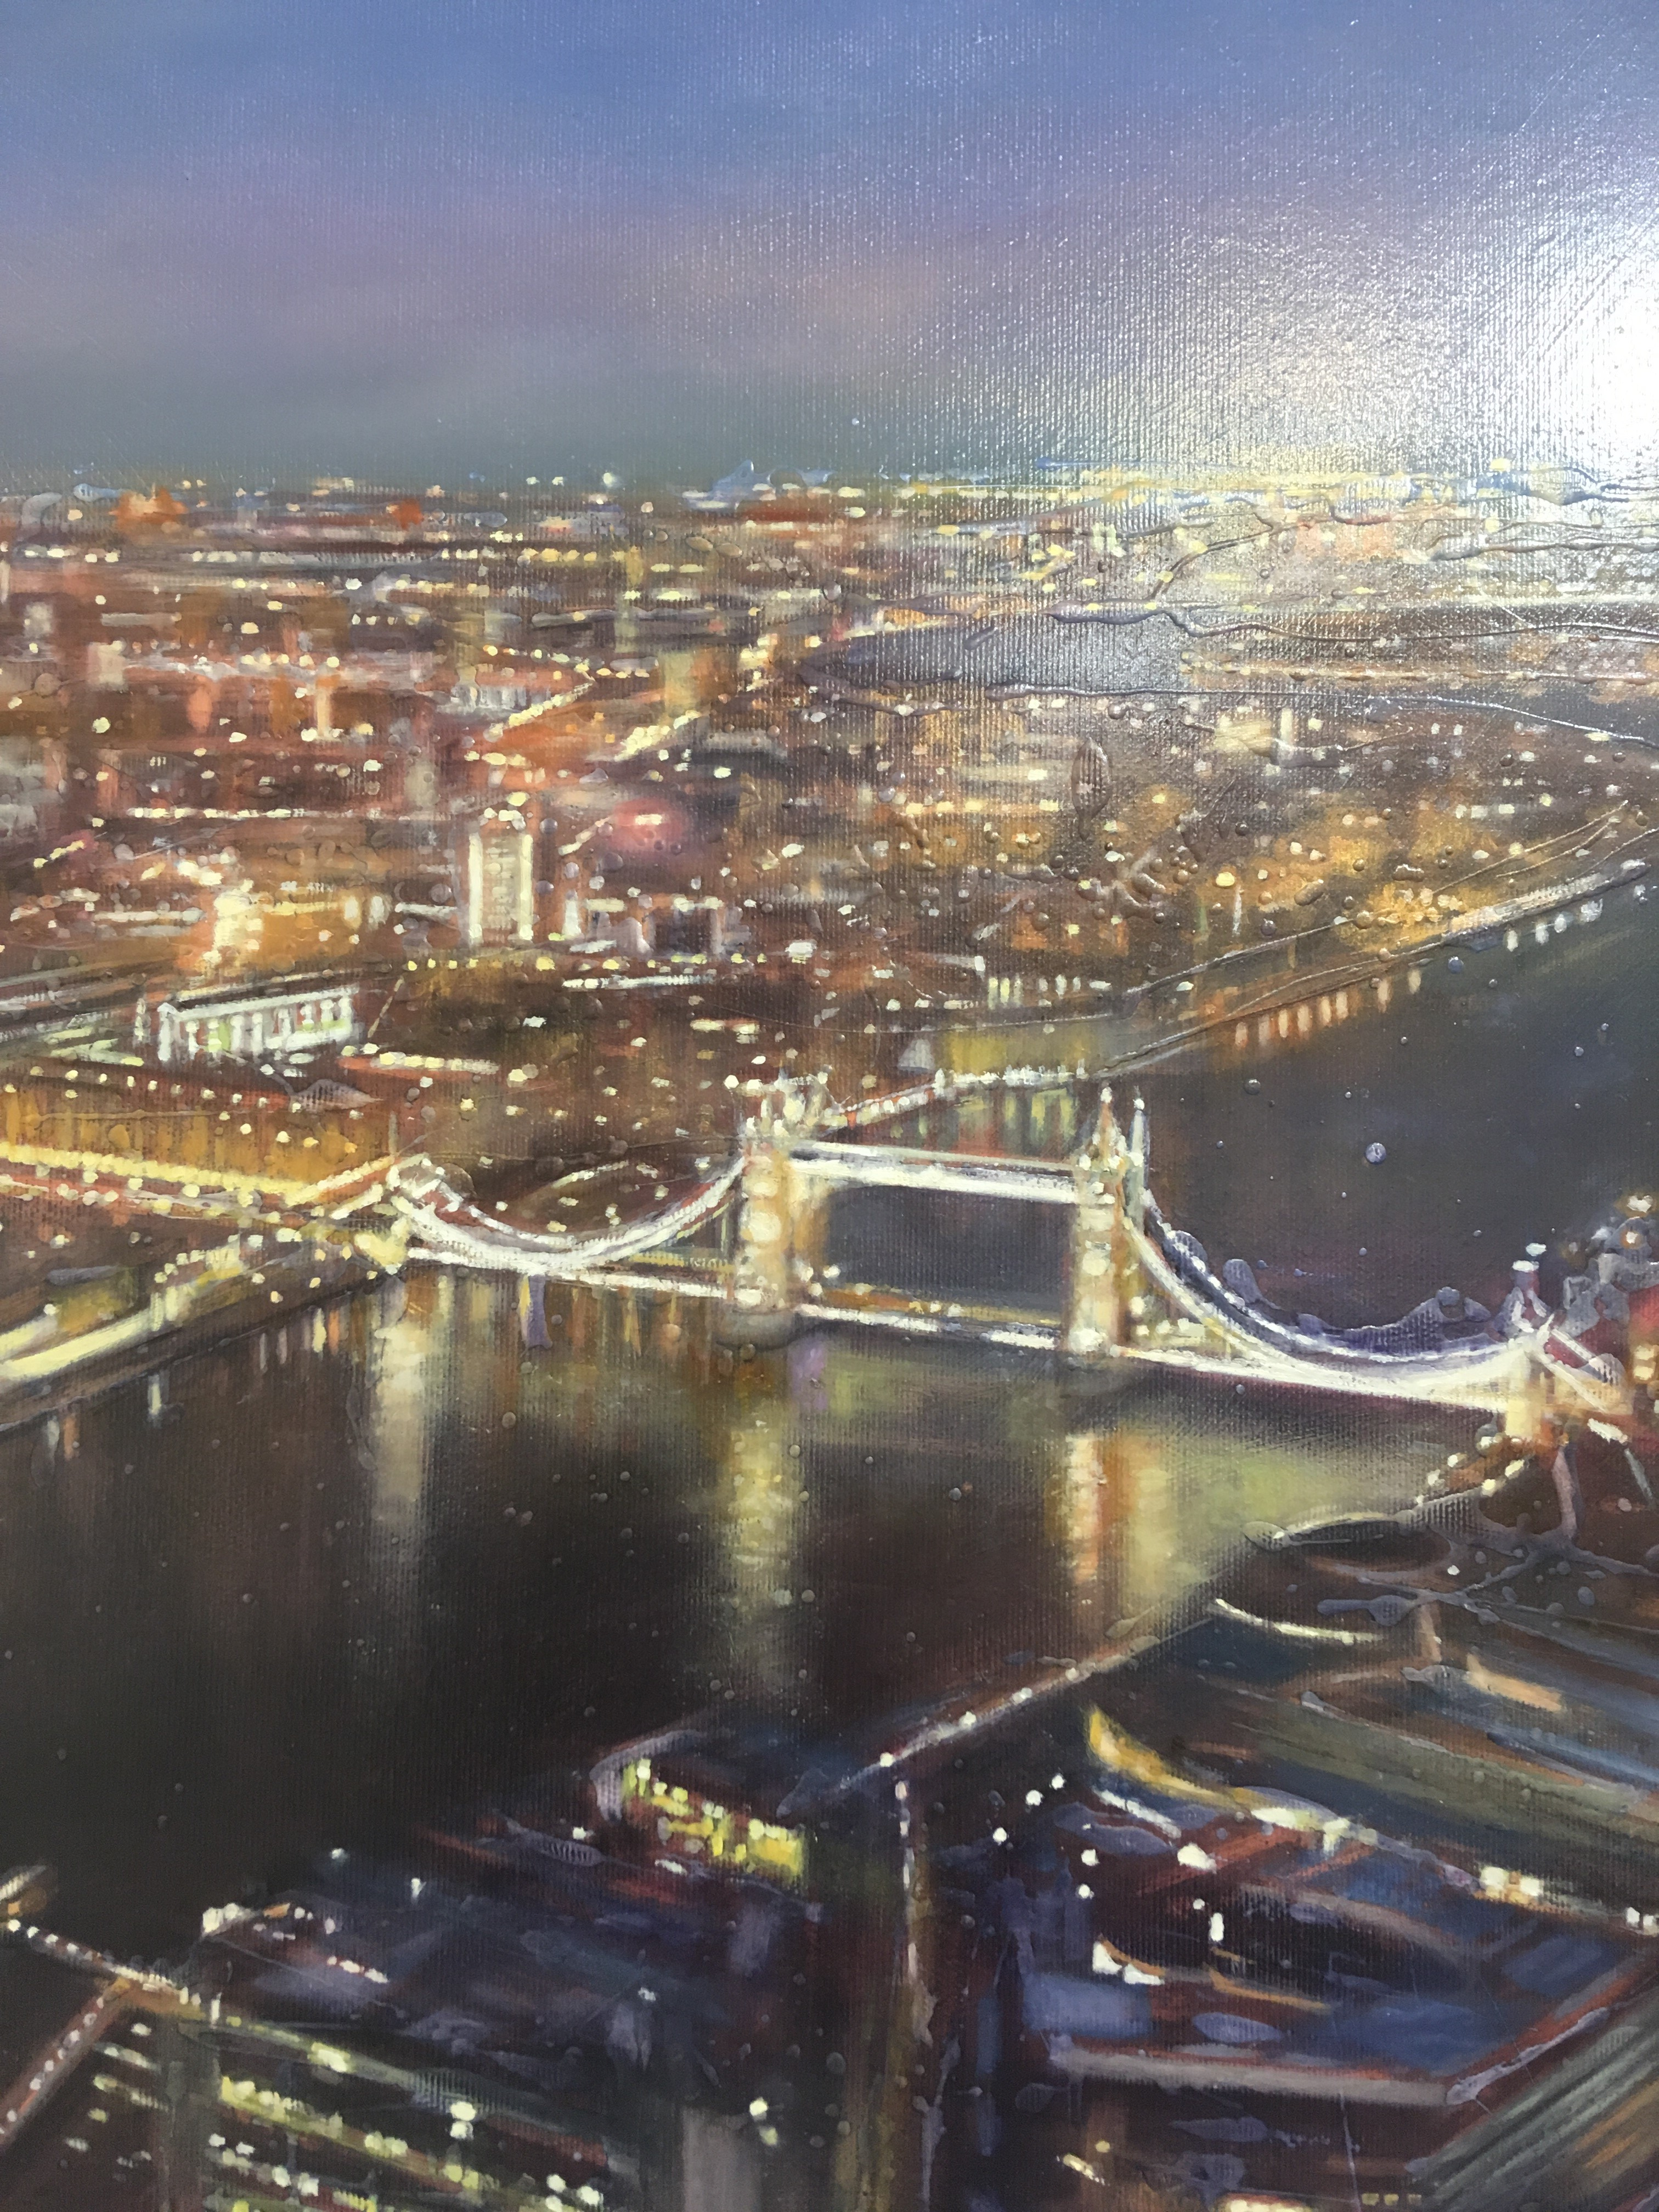 'Tower Bridge from the Shard' by artist Lesley Anne Derks